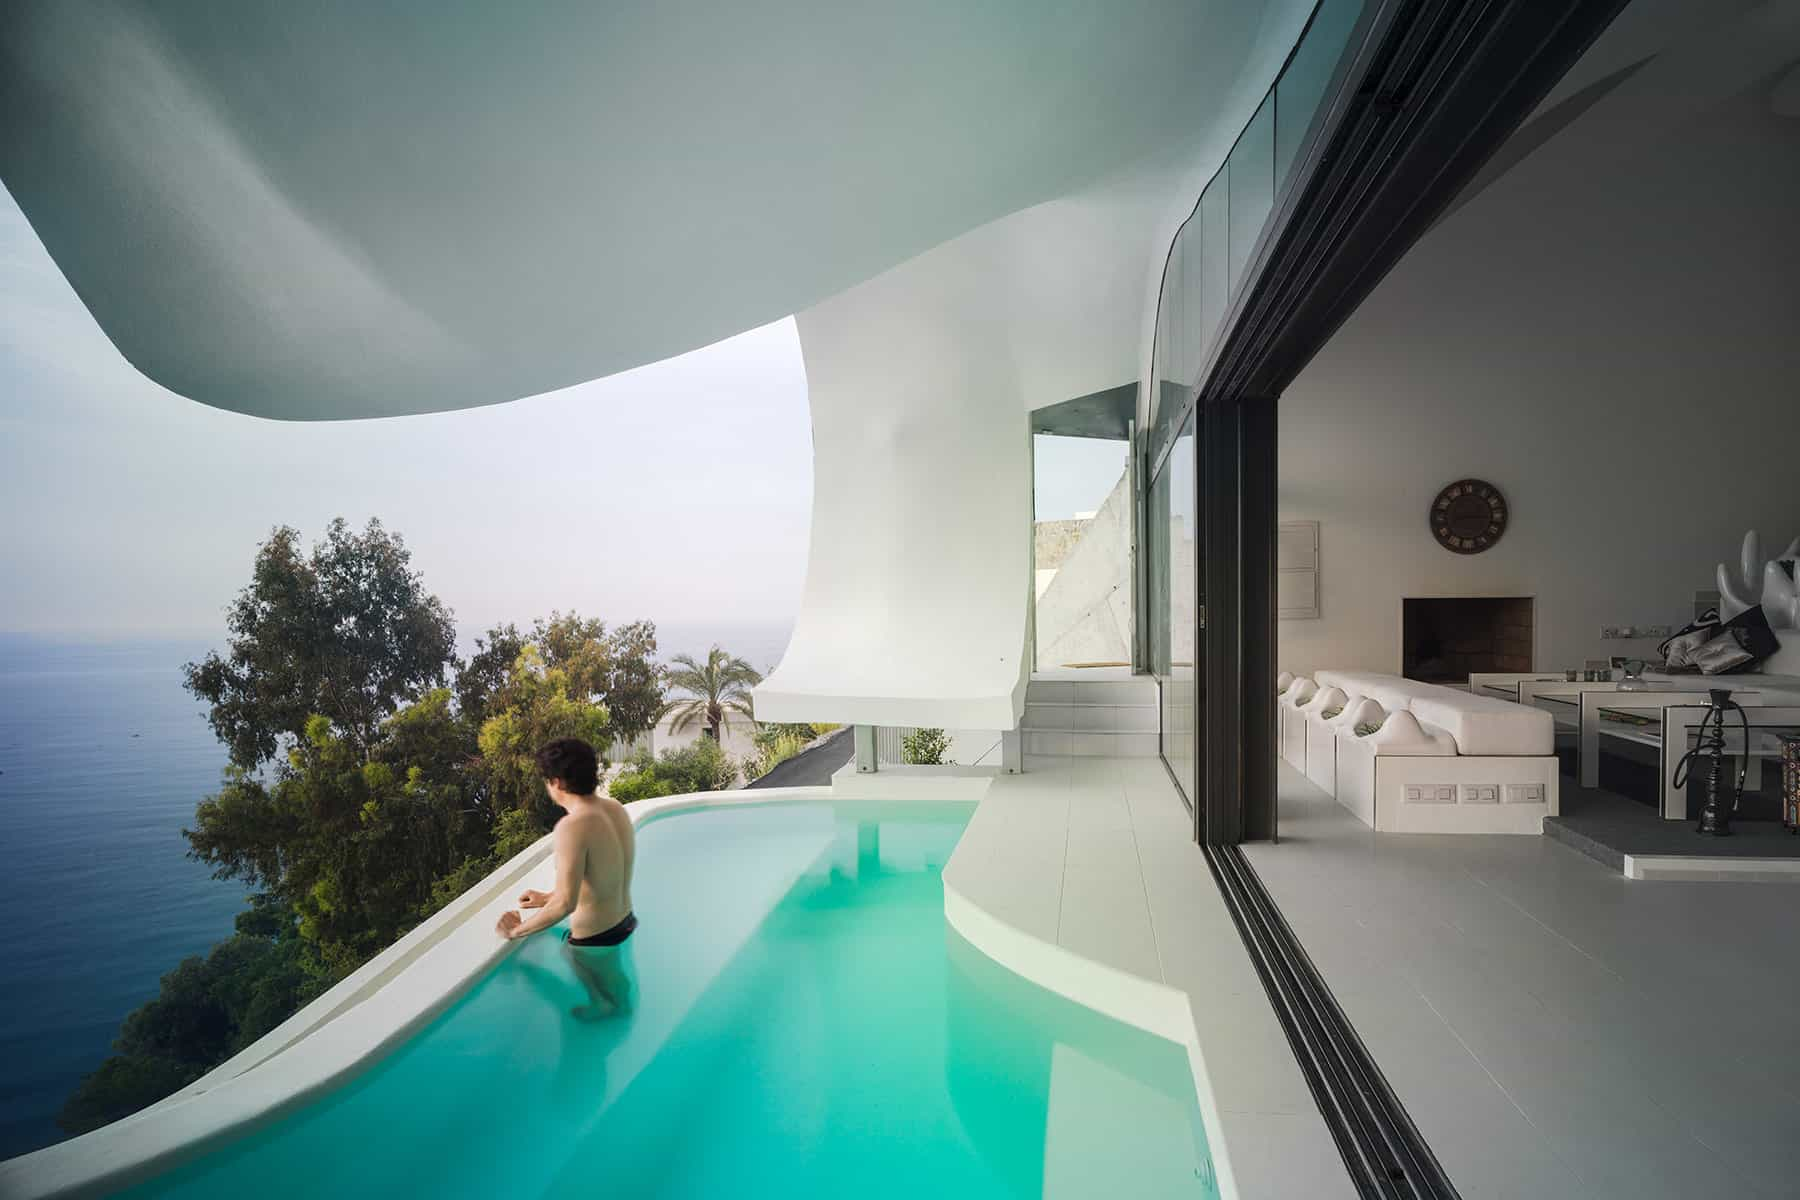 Cliff House-GilBartolome Architecture-05-1 Kindesign